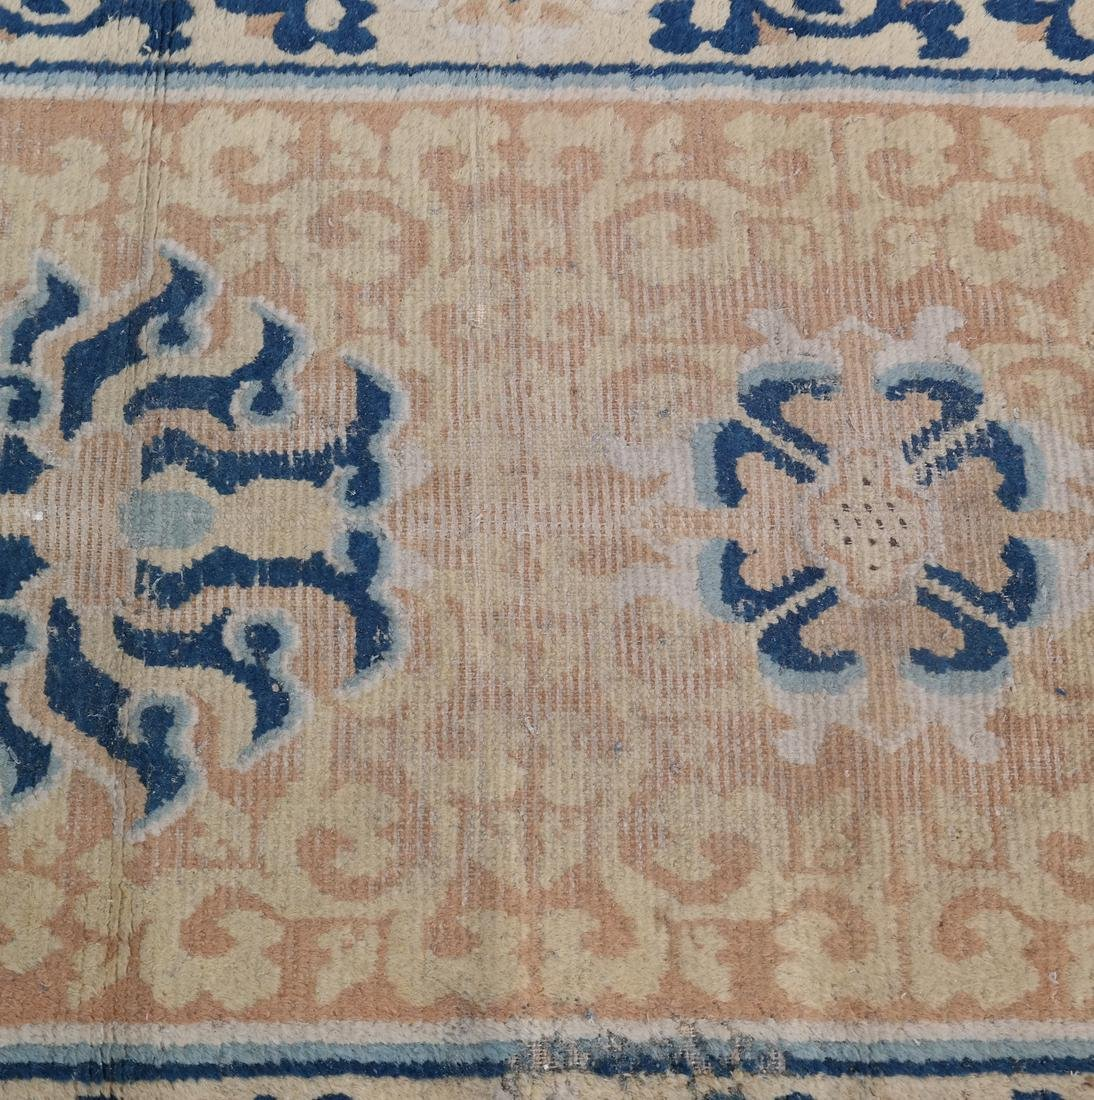 A CHINESE RUG 19TH CENTURY - 5